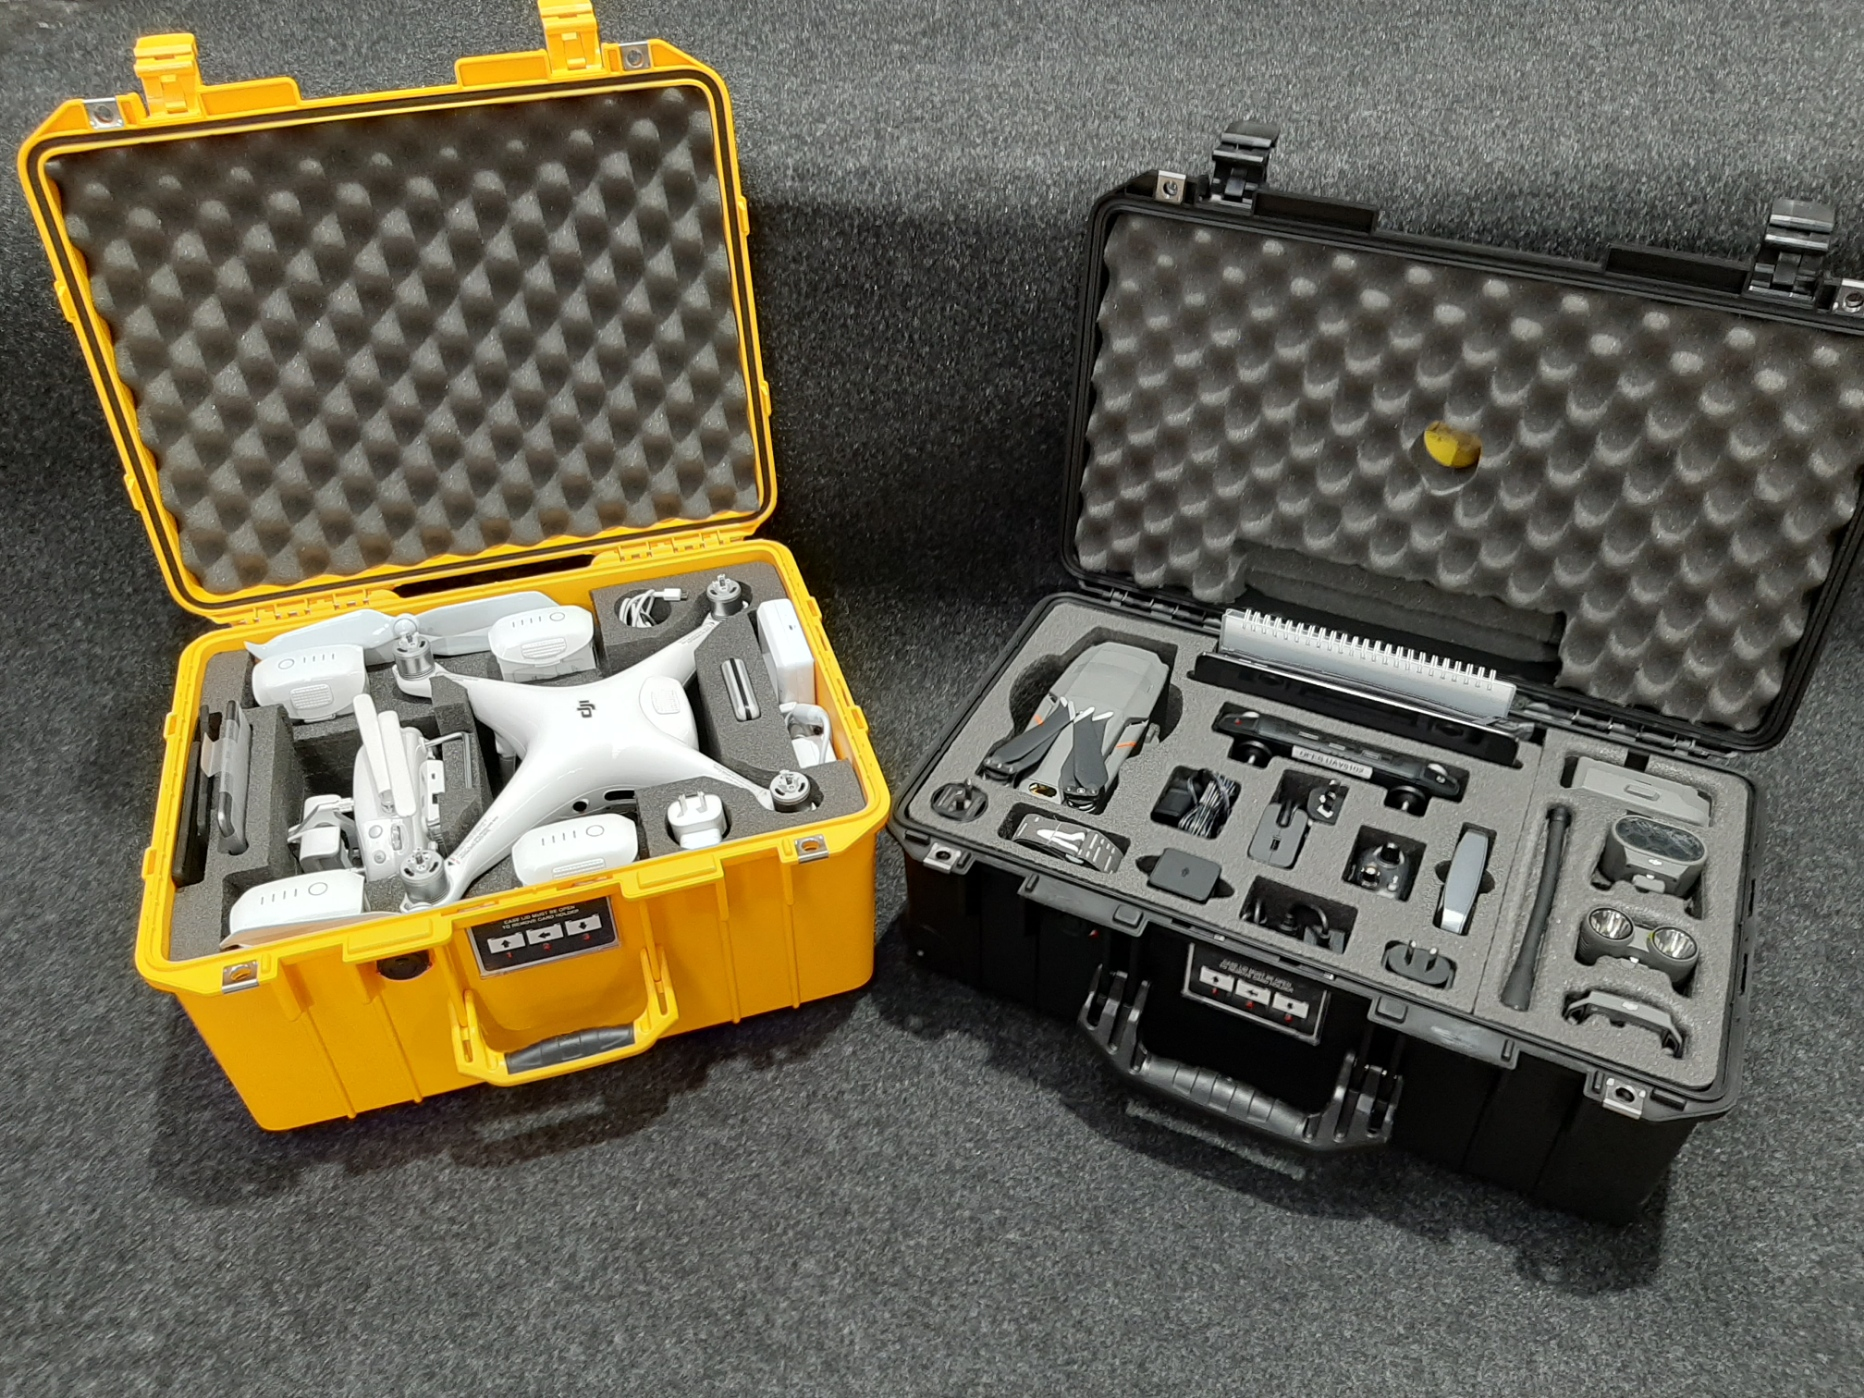 Pelican 1557 and 1535 Air and Suit the DJI Phantoms_Qld Protective Case